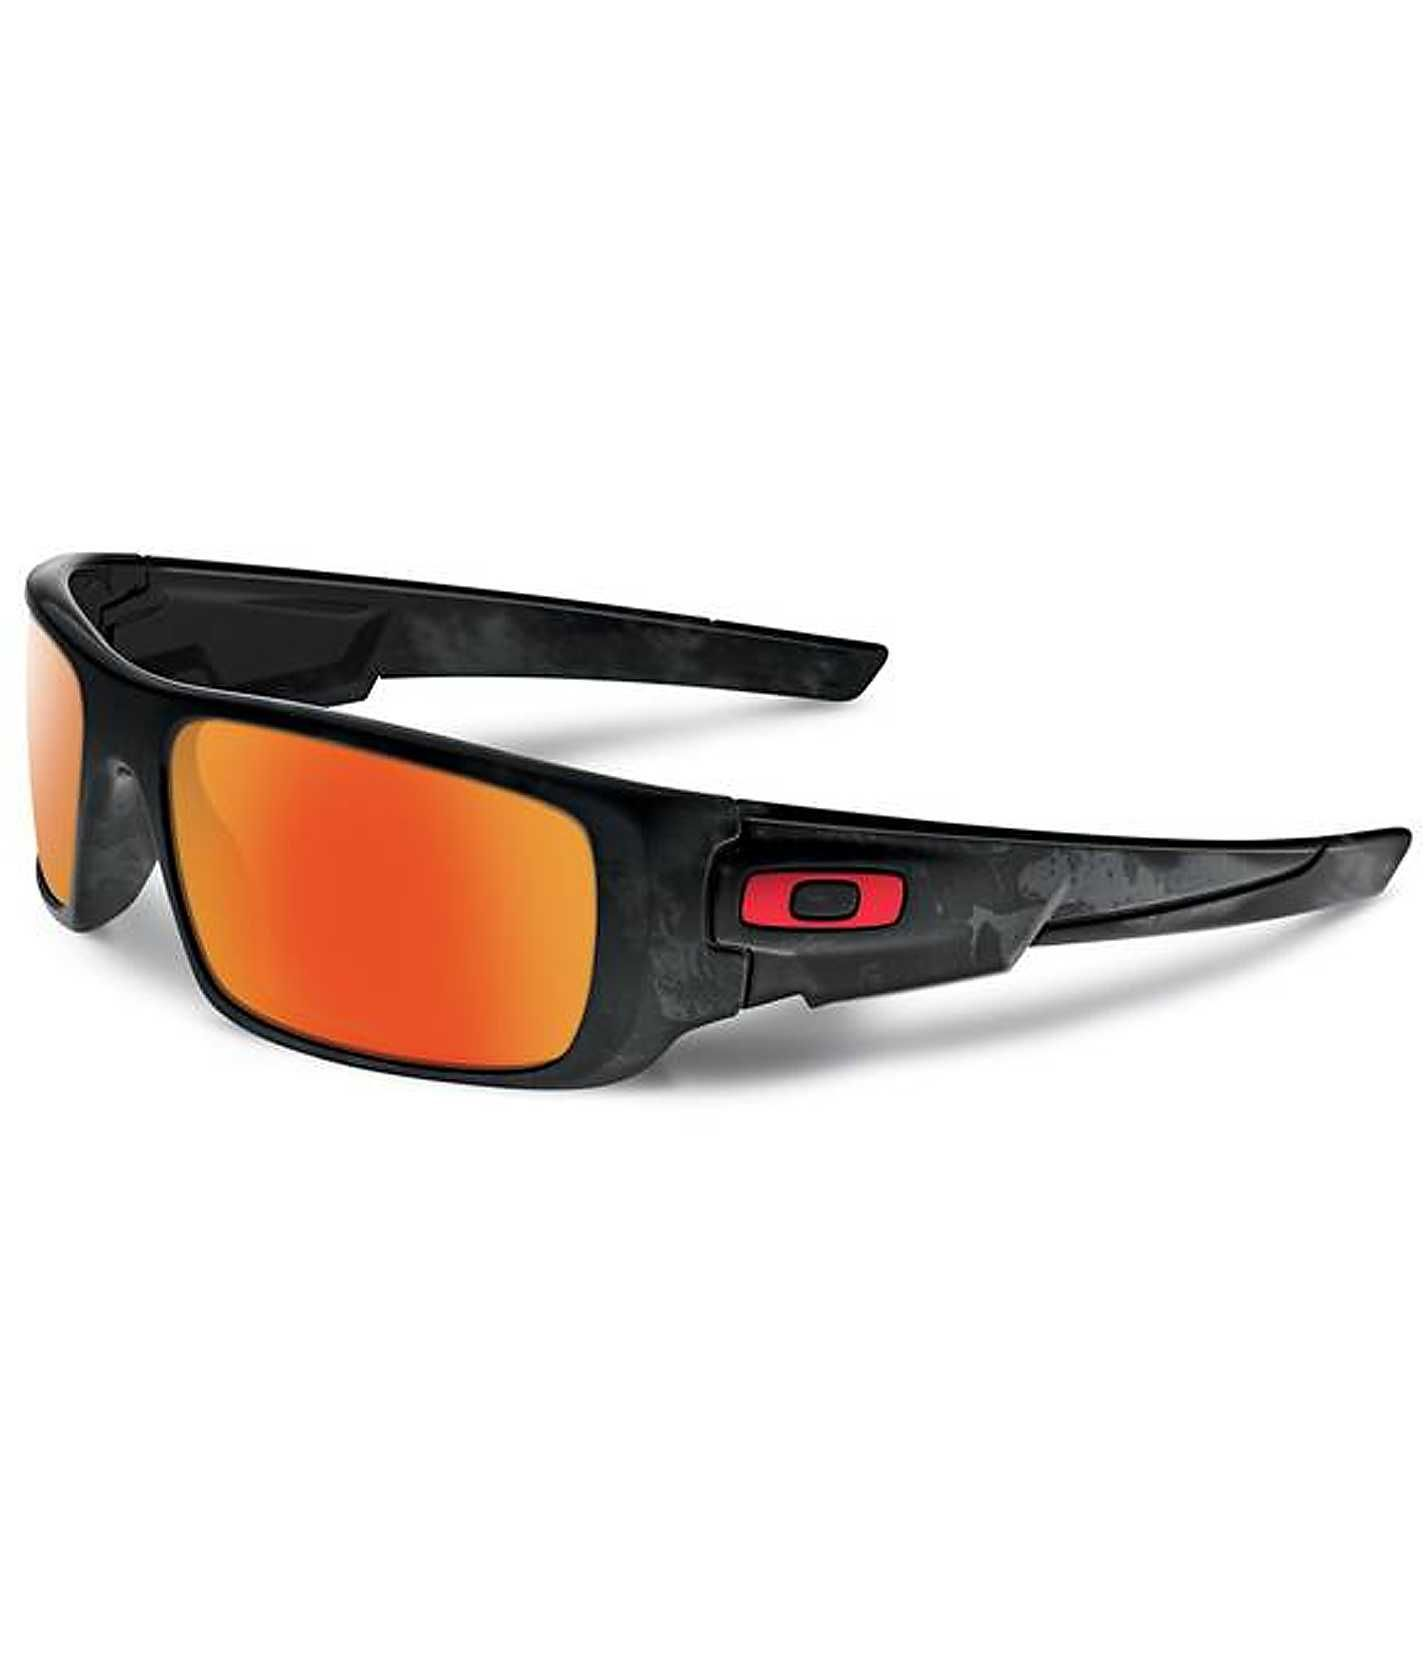 a084109d84 Oakley Crankshaft Sunglasses - Men's Accessories | Buckle | For the ...